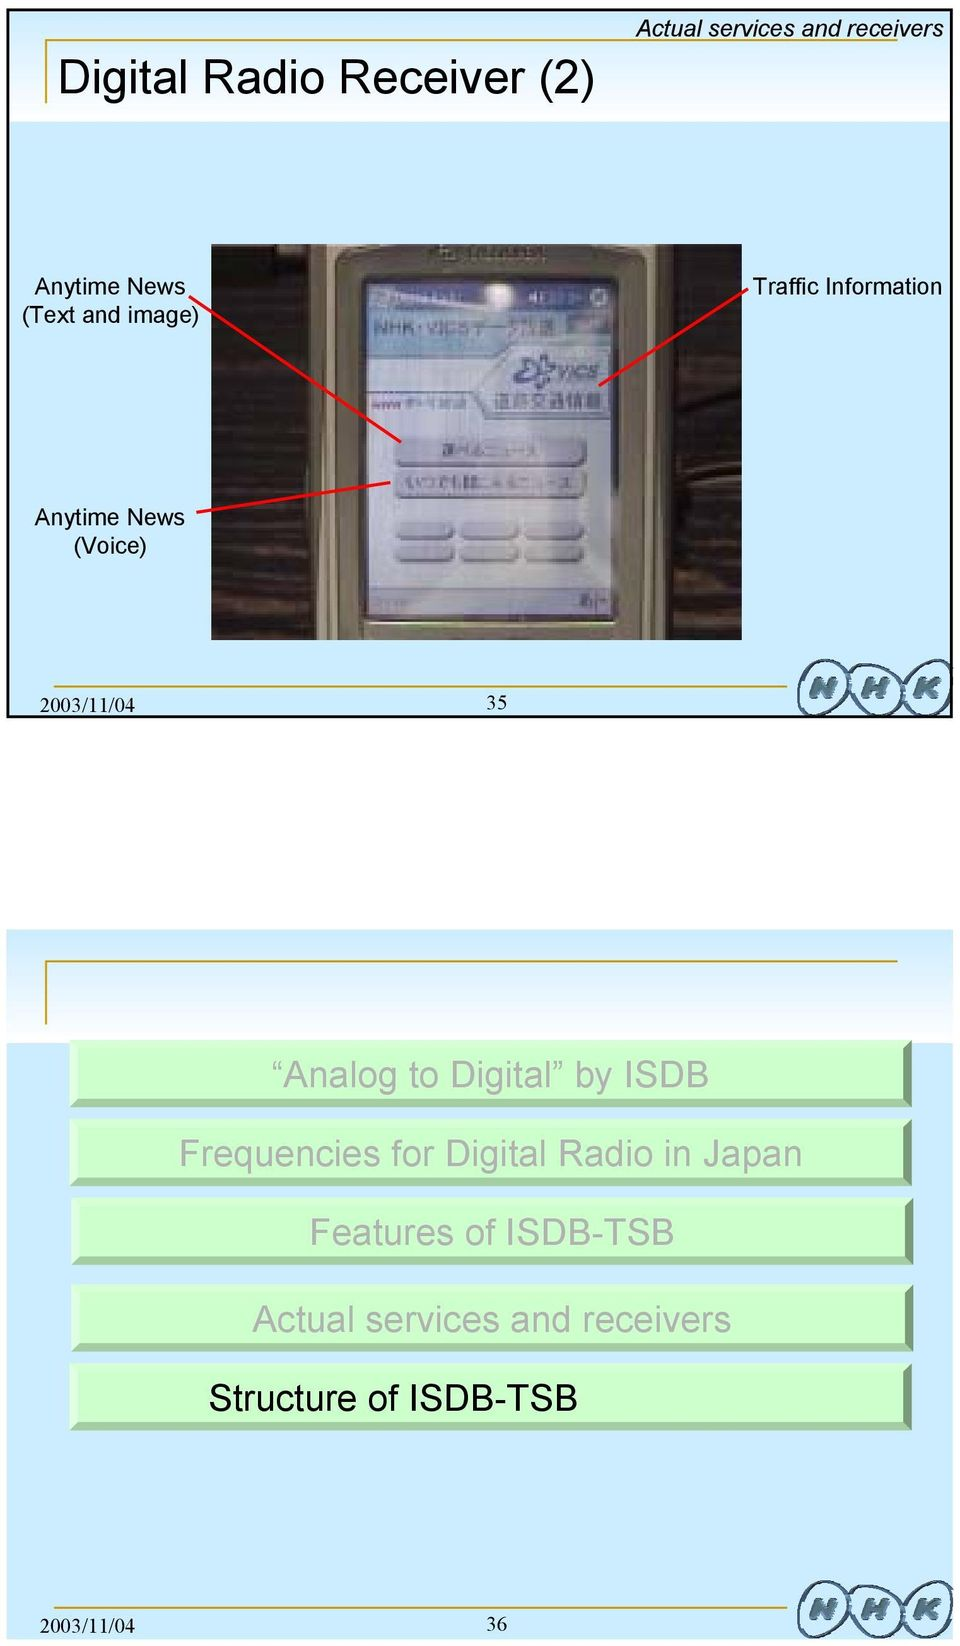 ISDB Frequencies for Digital Radio in Japan Features of ISDB-TSB